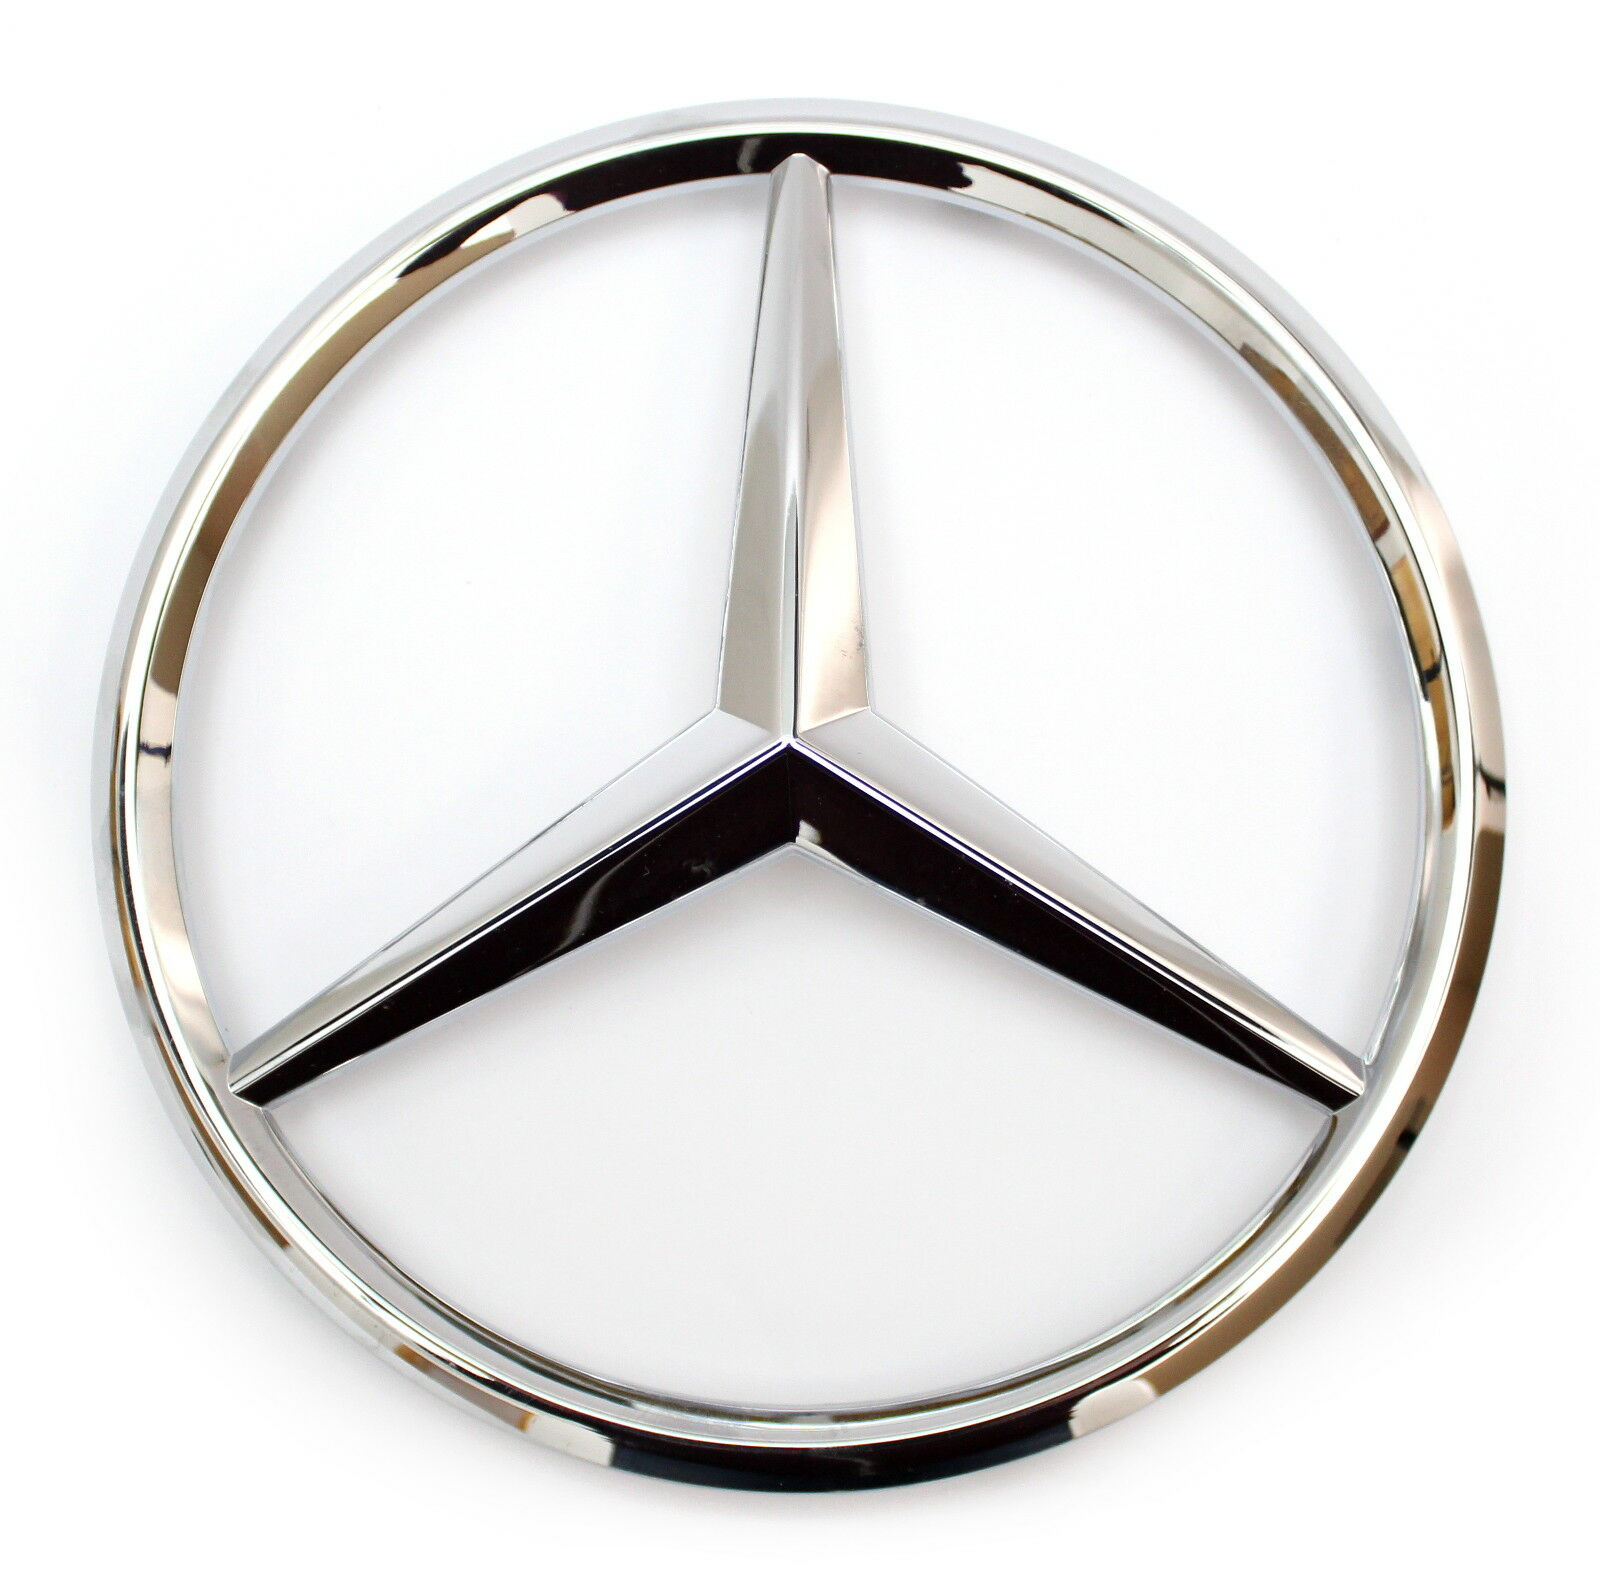 mercedes benz stern grill k hlergrill emblem. Black Bedroom Furniture Sets. Home Design Ideas